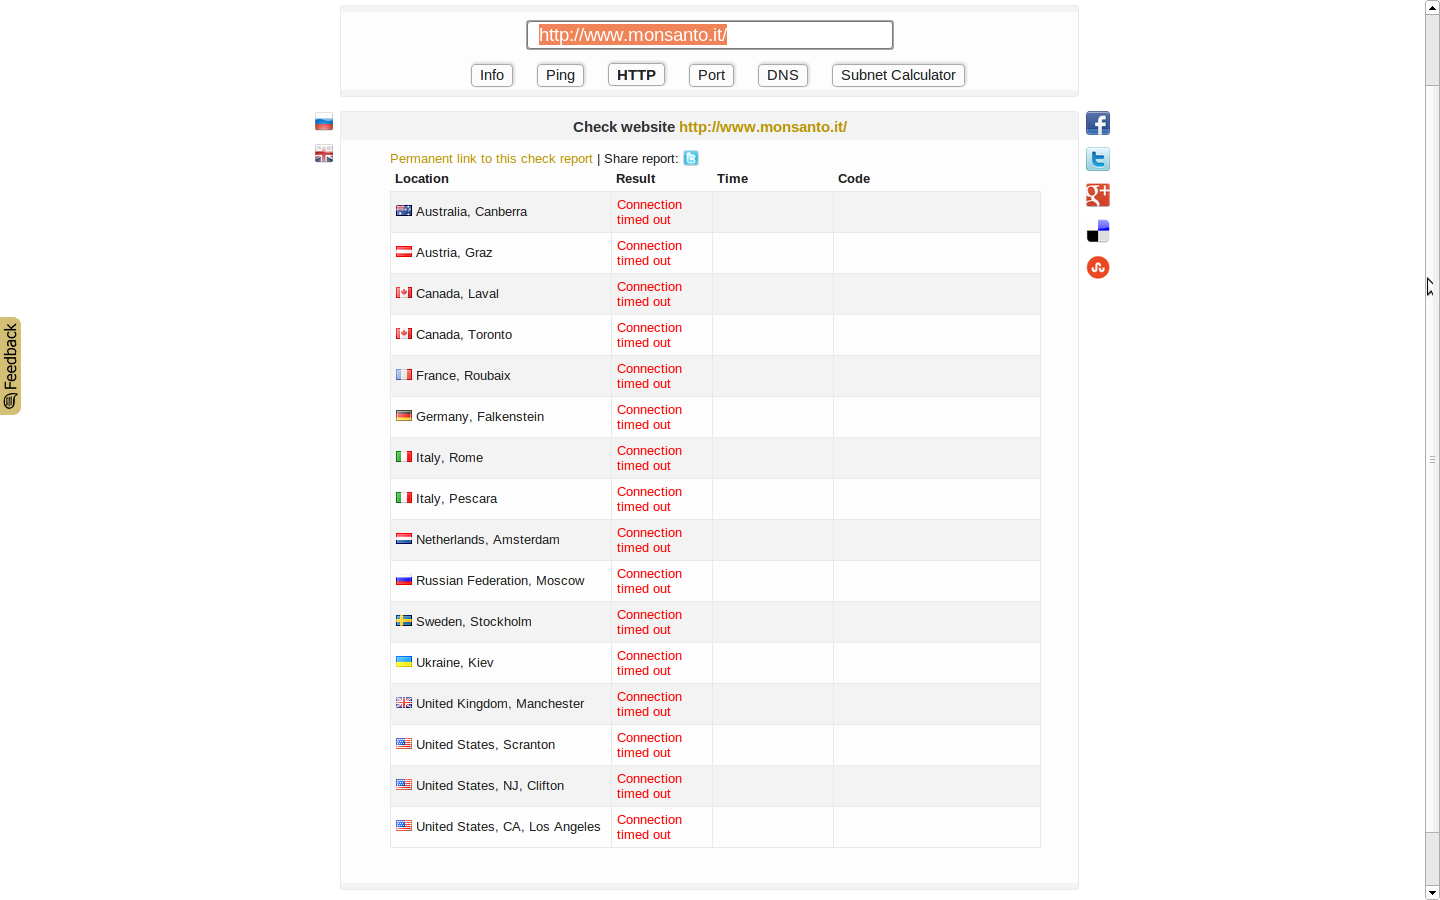 monsanto italy takedown anonymous support #OccupyMonsanto Tango Down! WWF Vadana Shiva soia sementi transgeniche RoundUp organismi transgenici Operation Green Rights Olio di palma Occupy Monsanto italy italian glifosati deforestazione